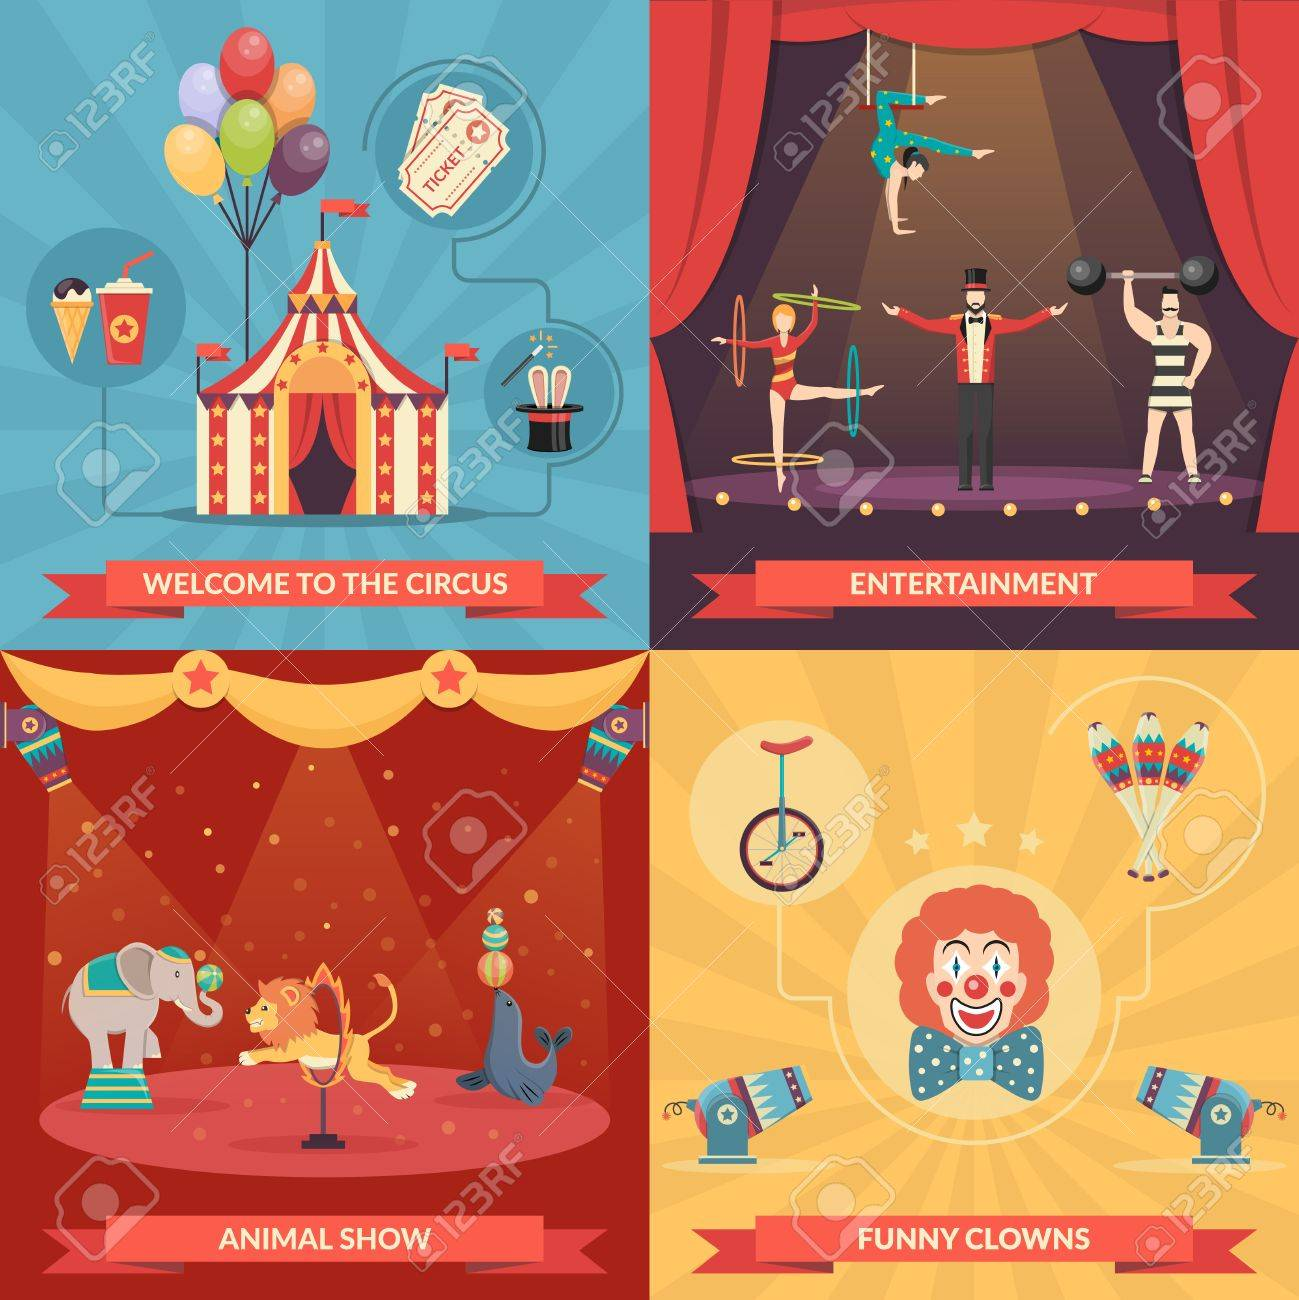 Circus show 2x2 design concept set of funny clowns entertainment and performance with trained animals strongman and acrobats flat vector illustration - 51138288